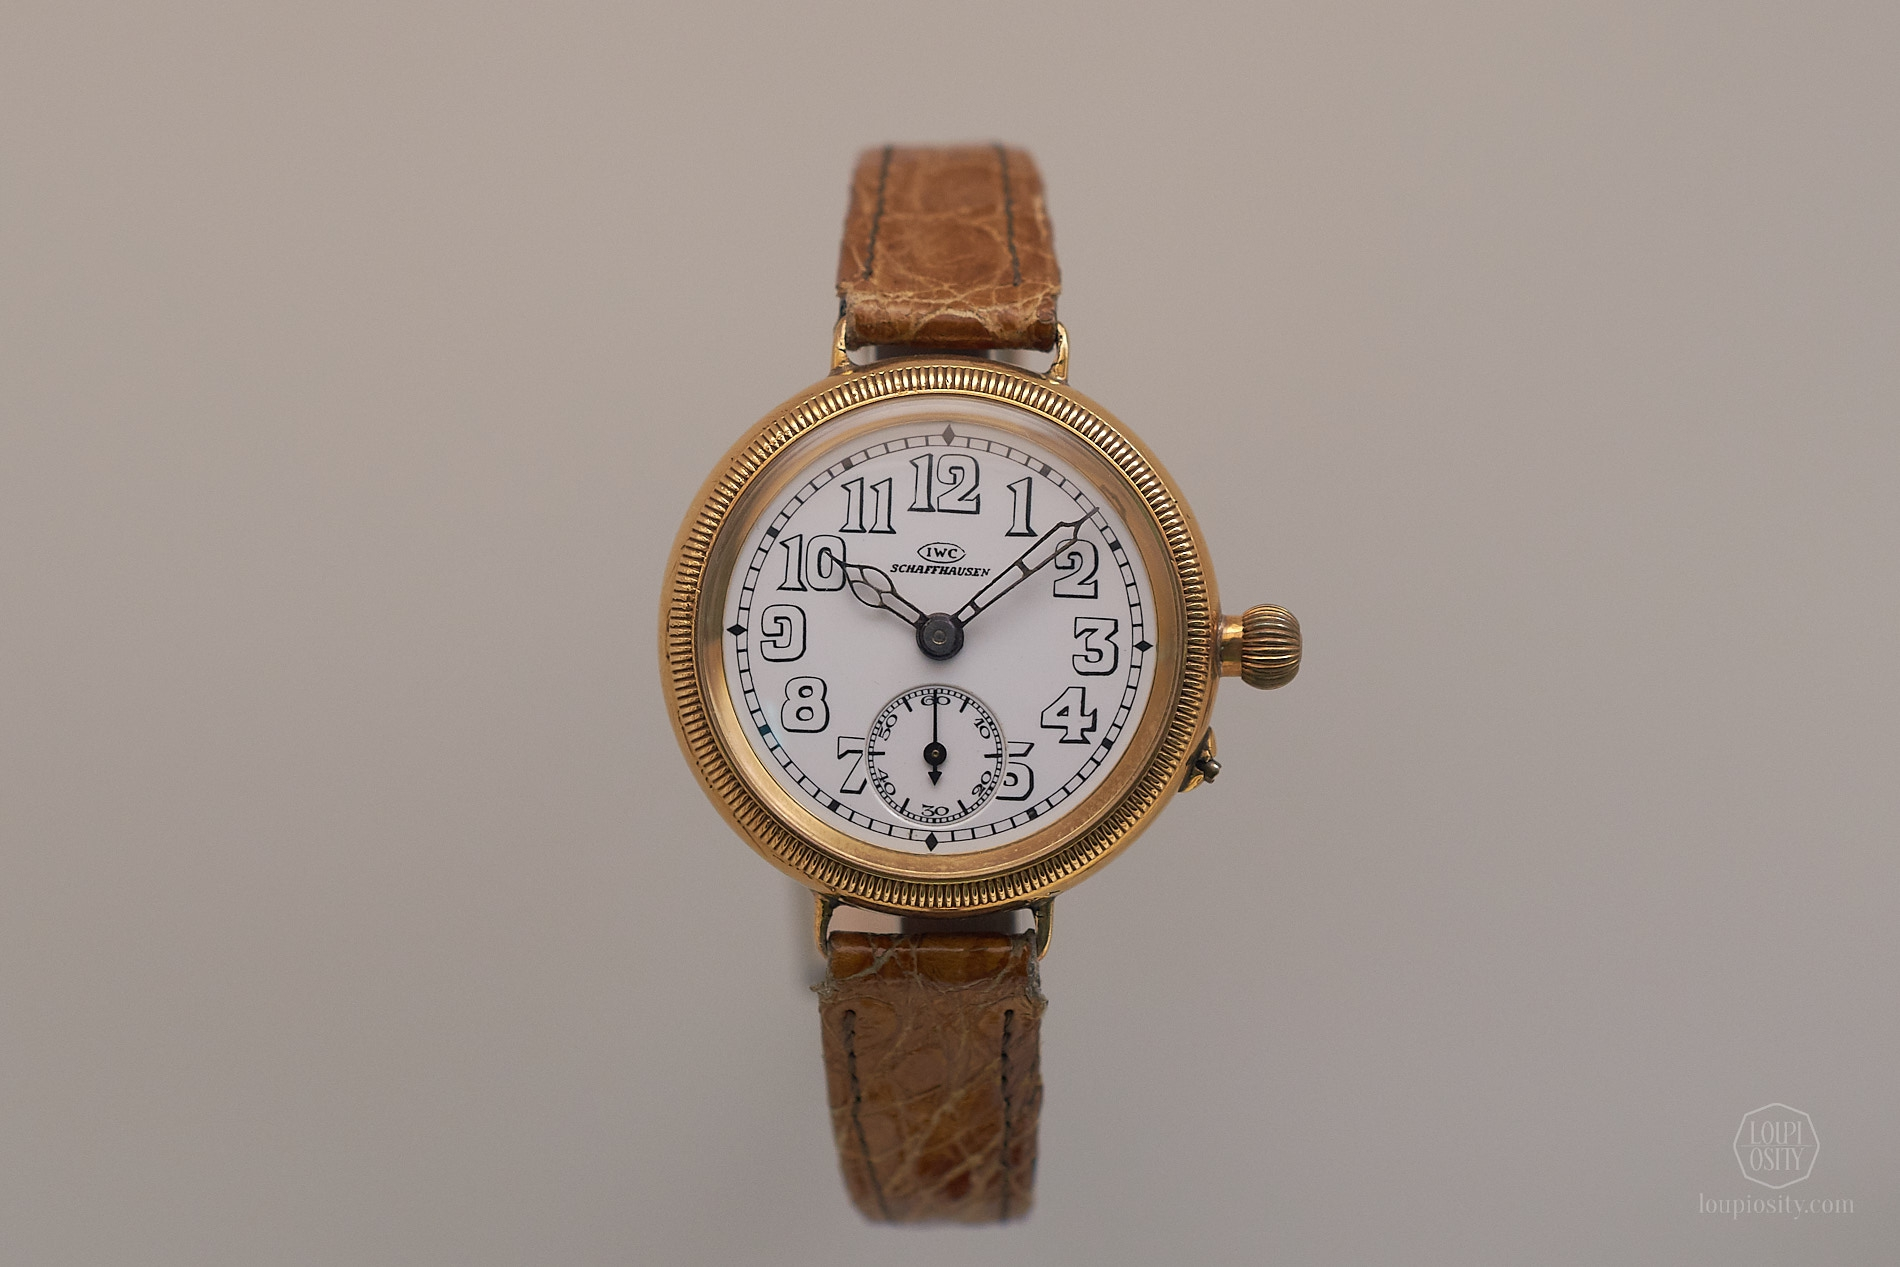 Gentlemen's wristwatch